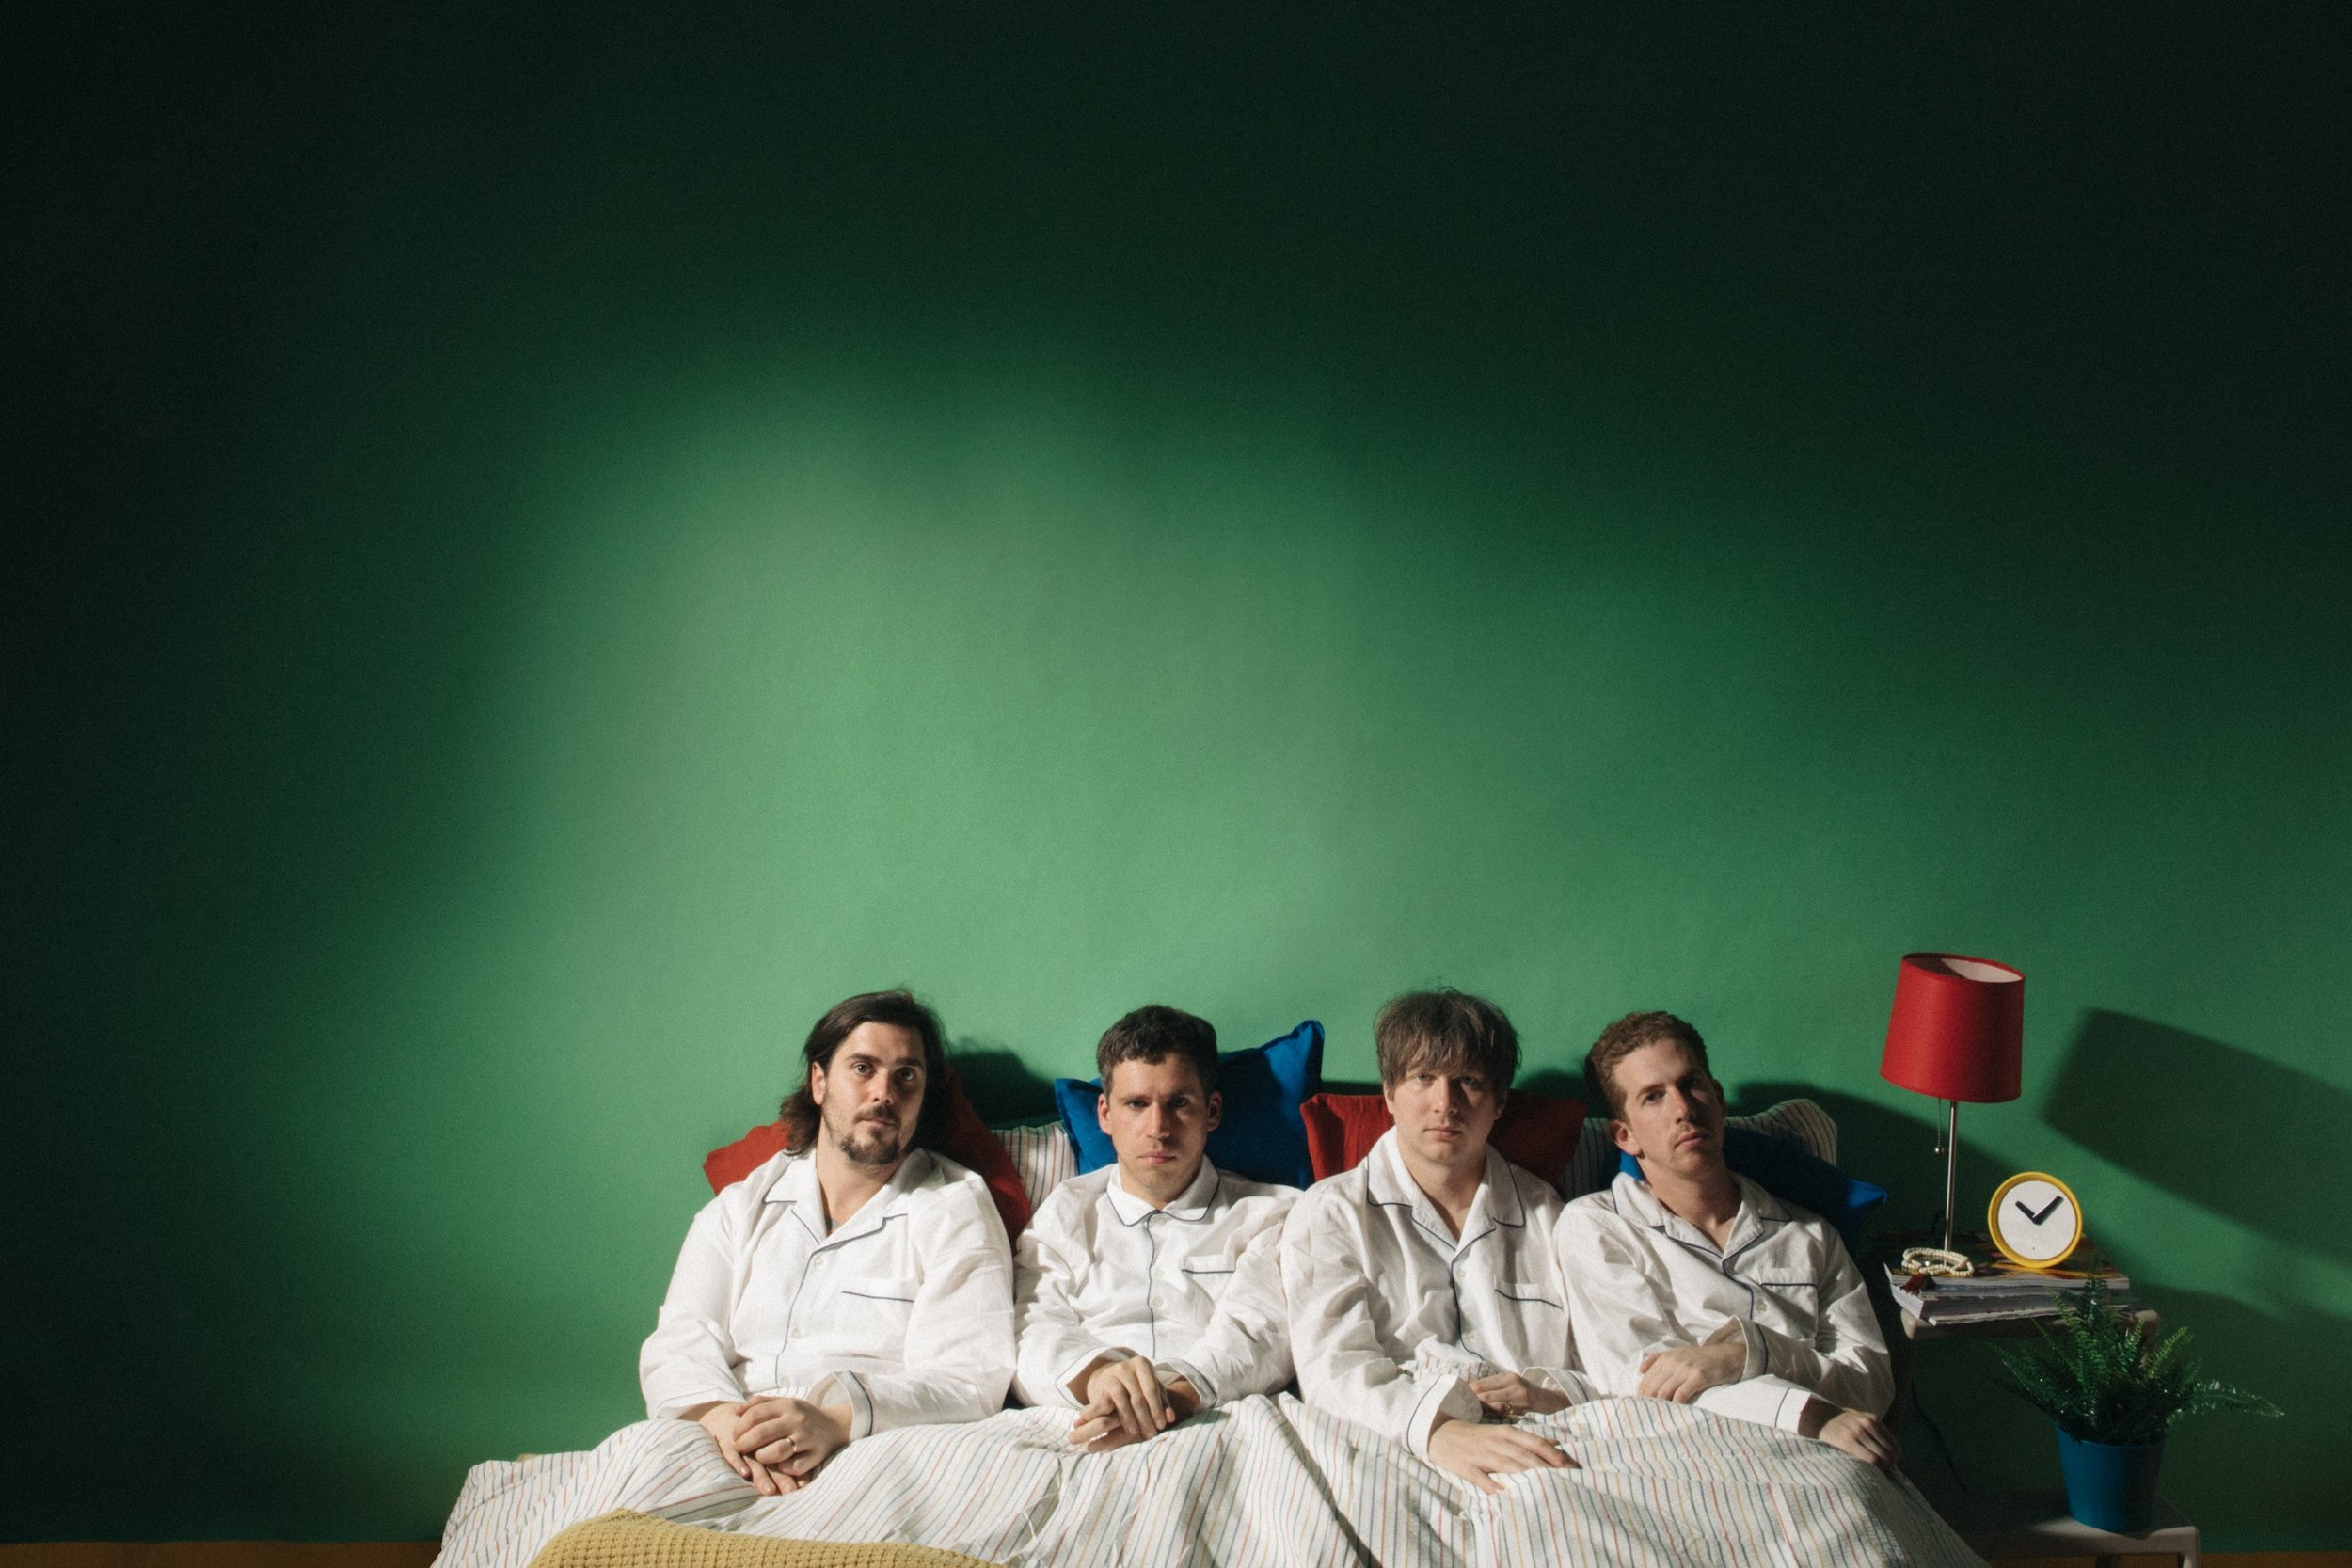 """Parquet Courts – """"Almost Had to Start a Fight / In and Out of Patience"""" - As fate would have it, we have another excellent single from a forthcoming album (Wide Awake!) which is set to come out on the same day as Barnett's LP: May 18th. Beloved within the indie rock scene for their unique """"Americana-punk"""" sound, Parquet Courts excels at capturing the oddities and frustrations of living in present-day America. This track continues the trend, describing the despondent nihilism we've turned to as a national coping mechanism for the aptly termed """"chaos dimension"""" we live in. Until we find ourselves a government that isn't run entirely by corporate interests, at least we'll have some catchy tunes to help pass the time."""